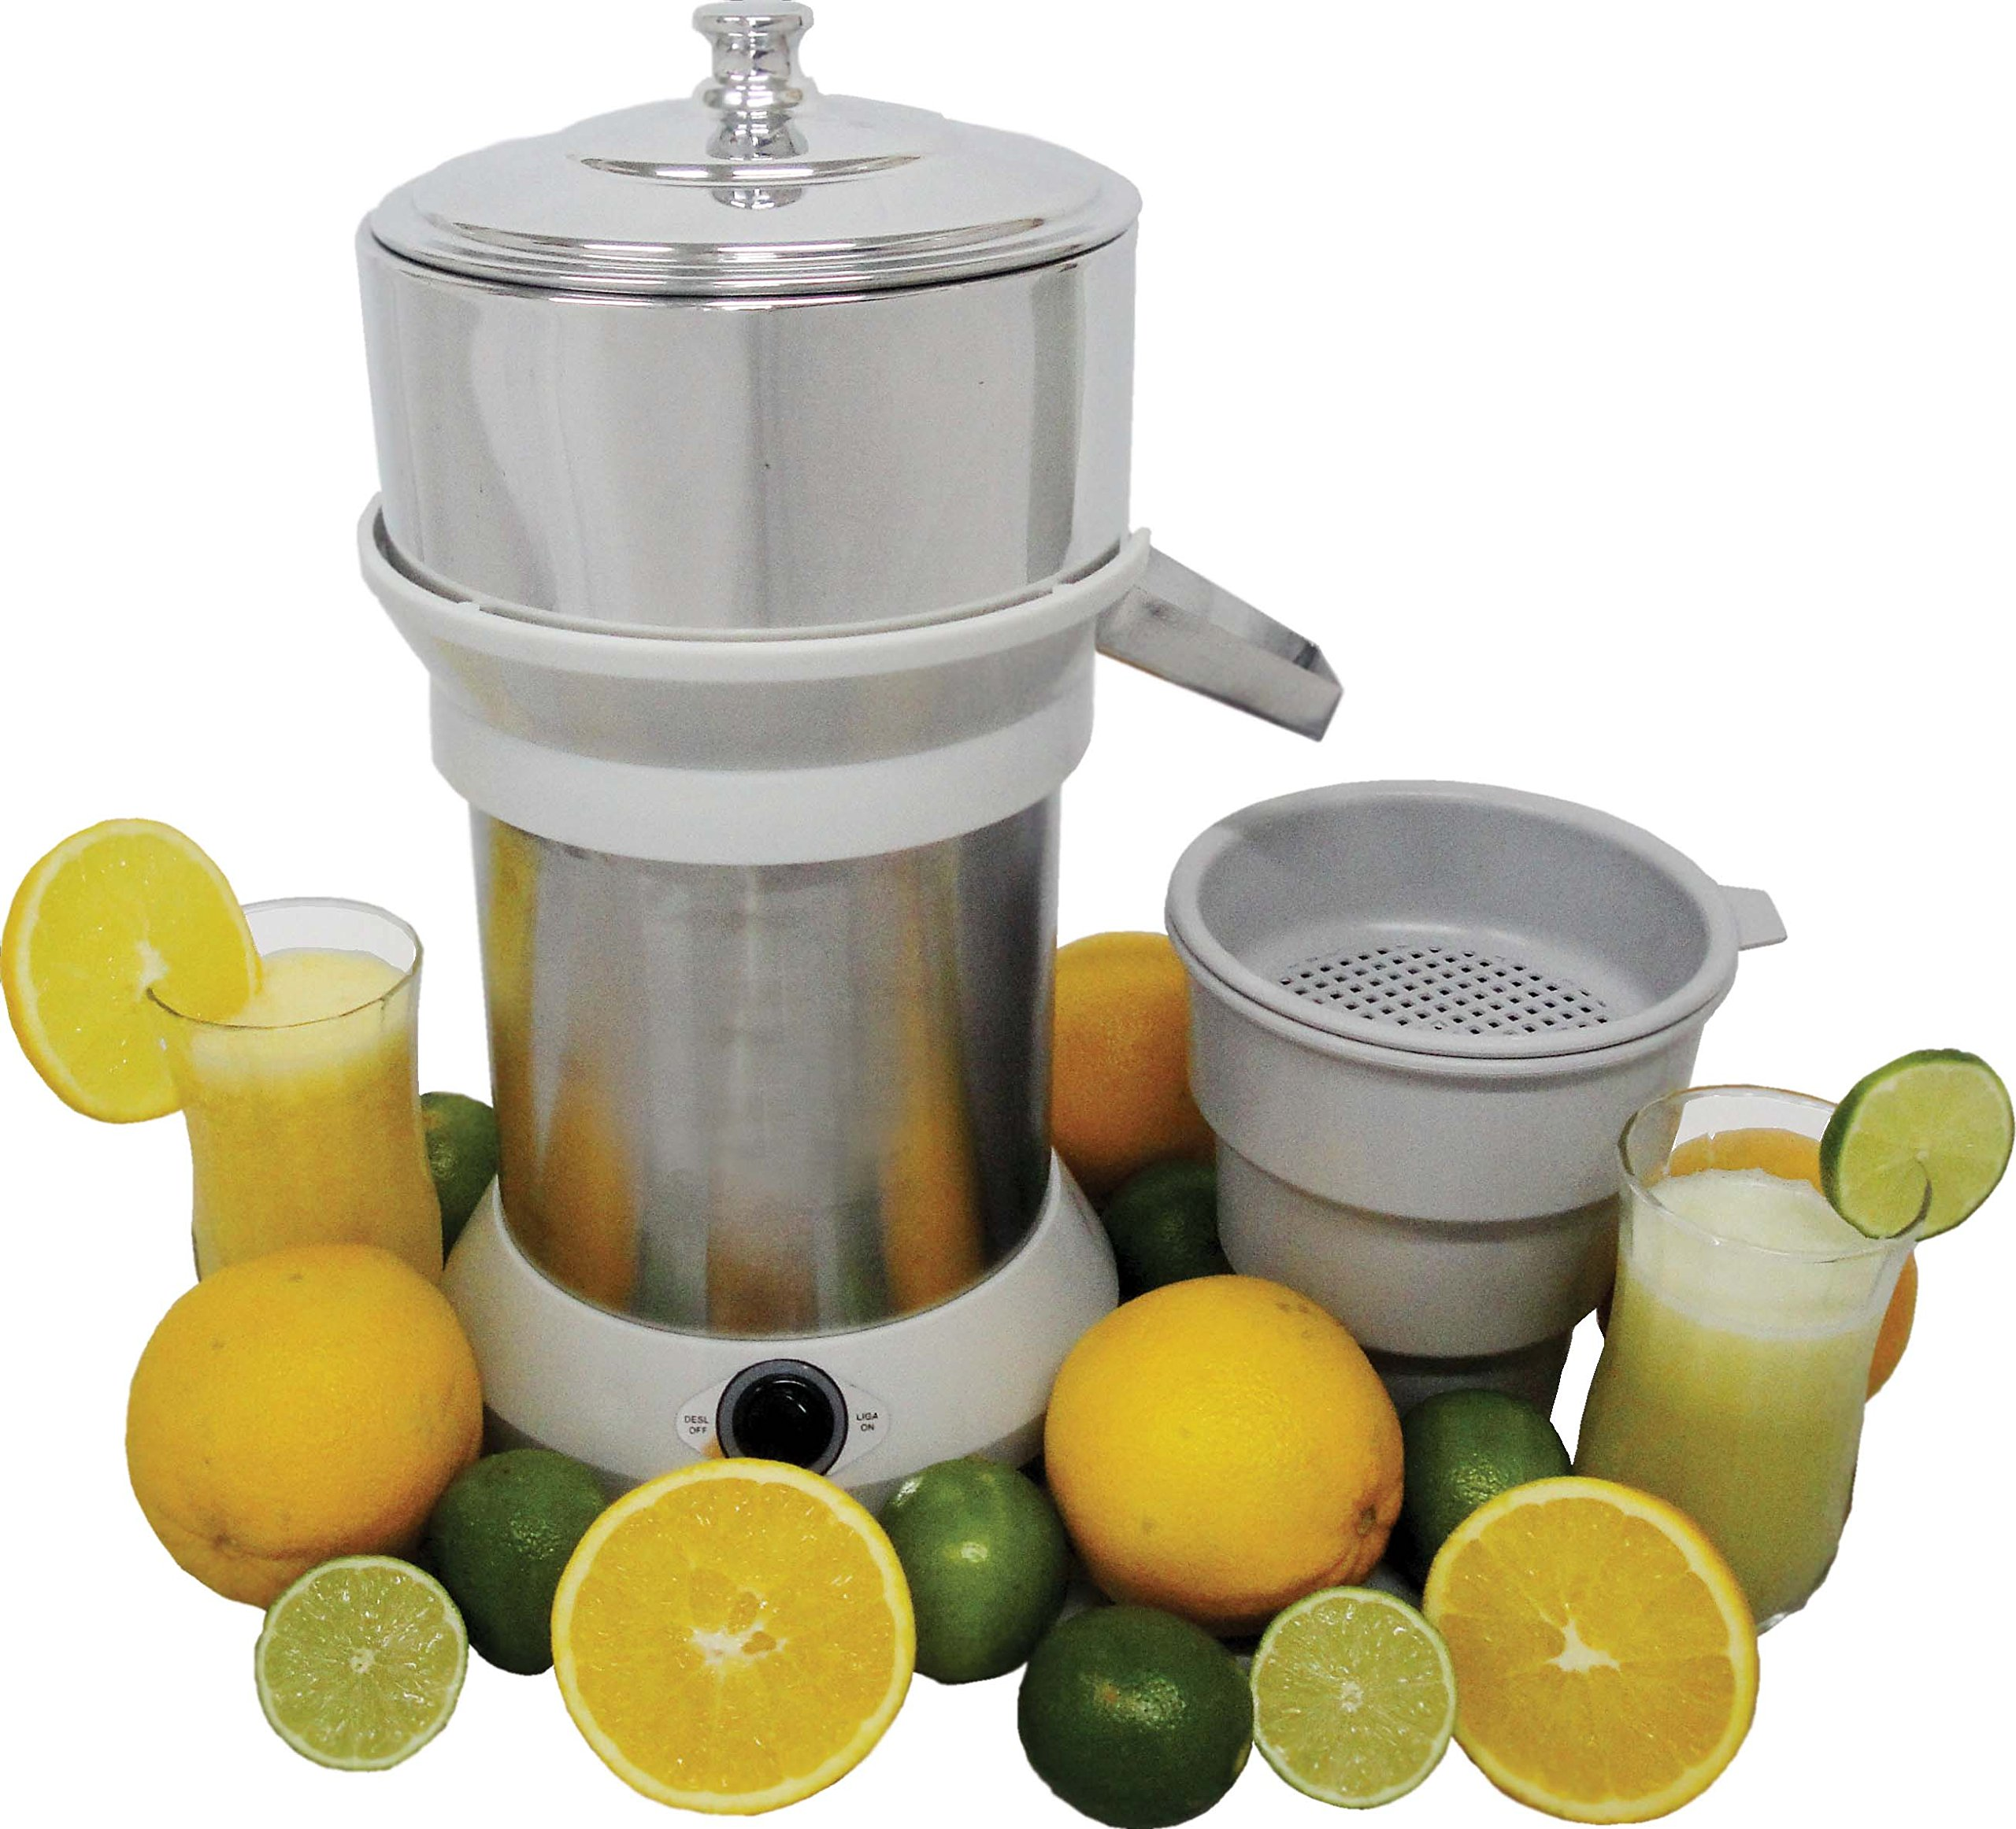 Omcan 10865 EX Citrus Fruit Juicer 1/4 Hp Juice Extractor Commercial Restaurant by OMCAN (Image #1)